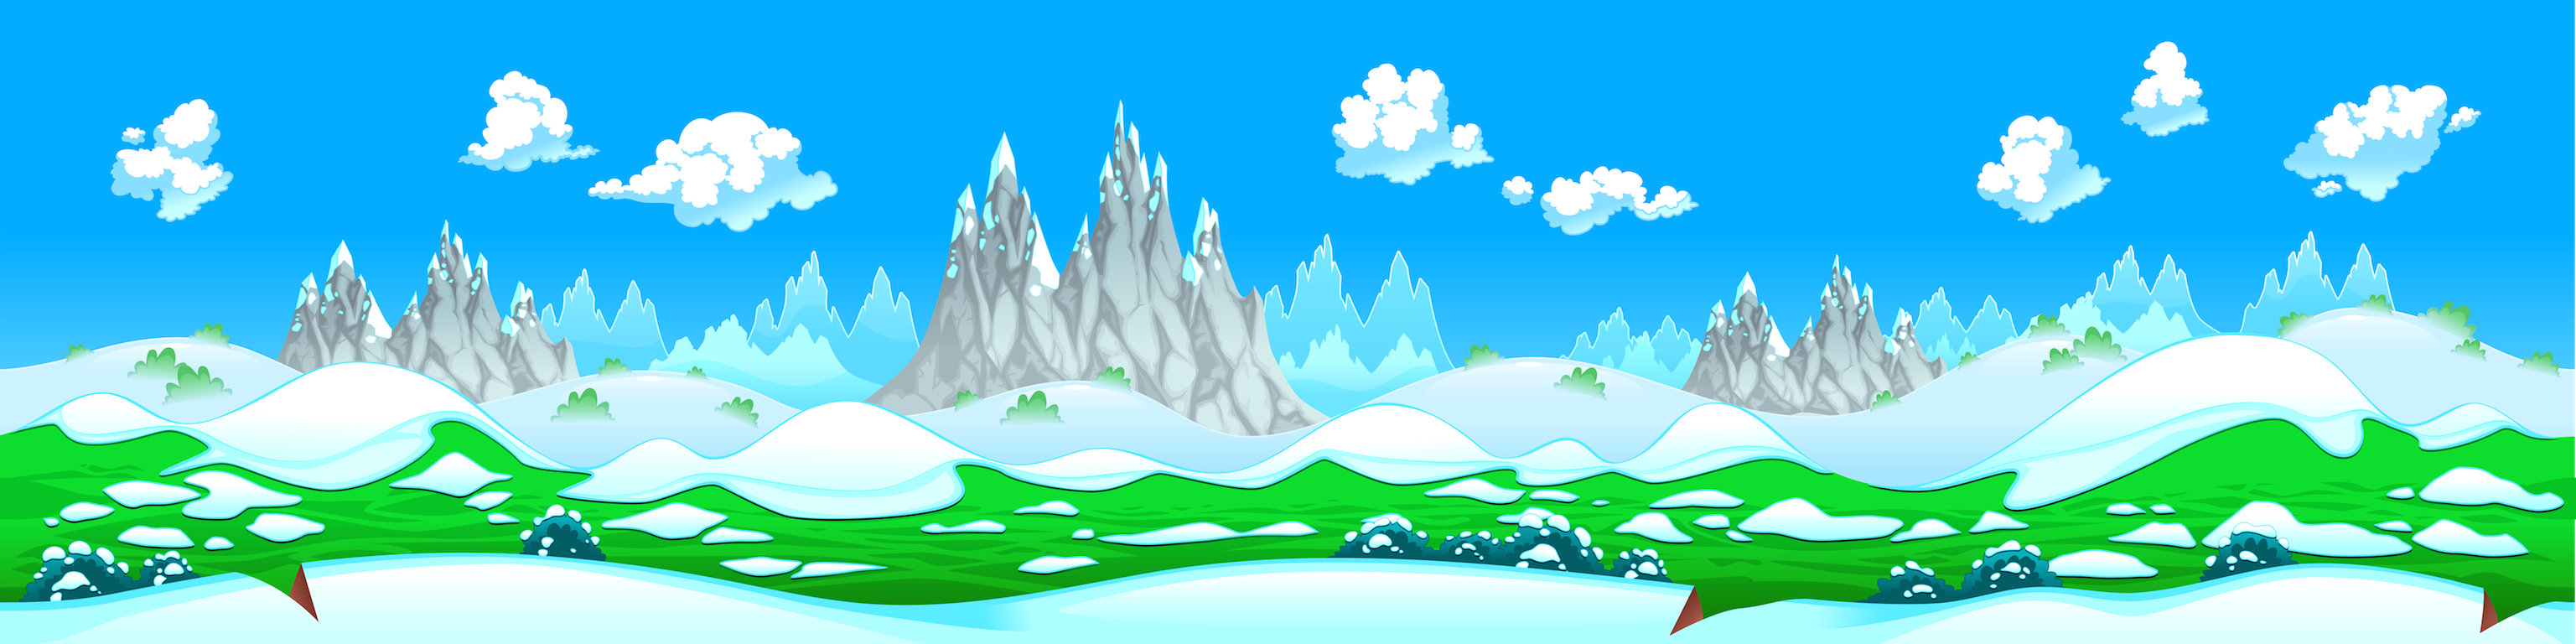 background scene - seamless winter